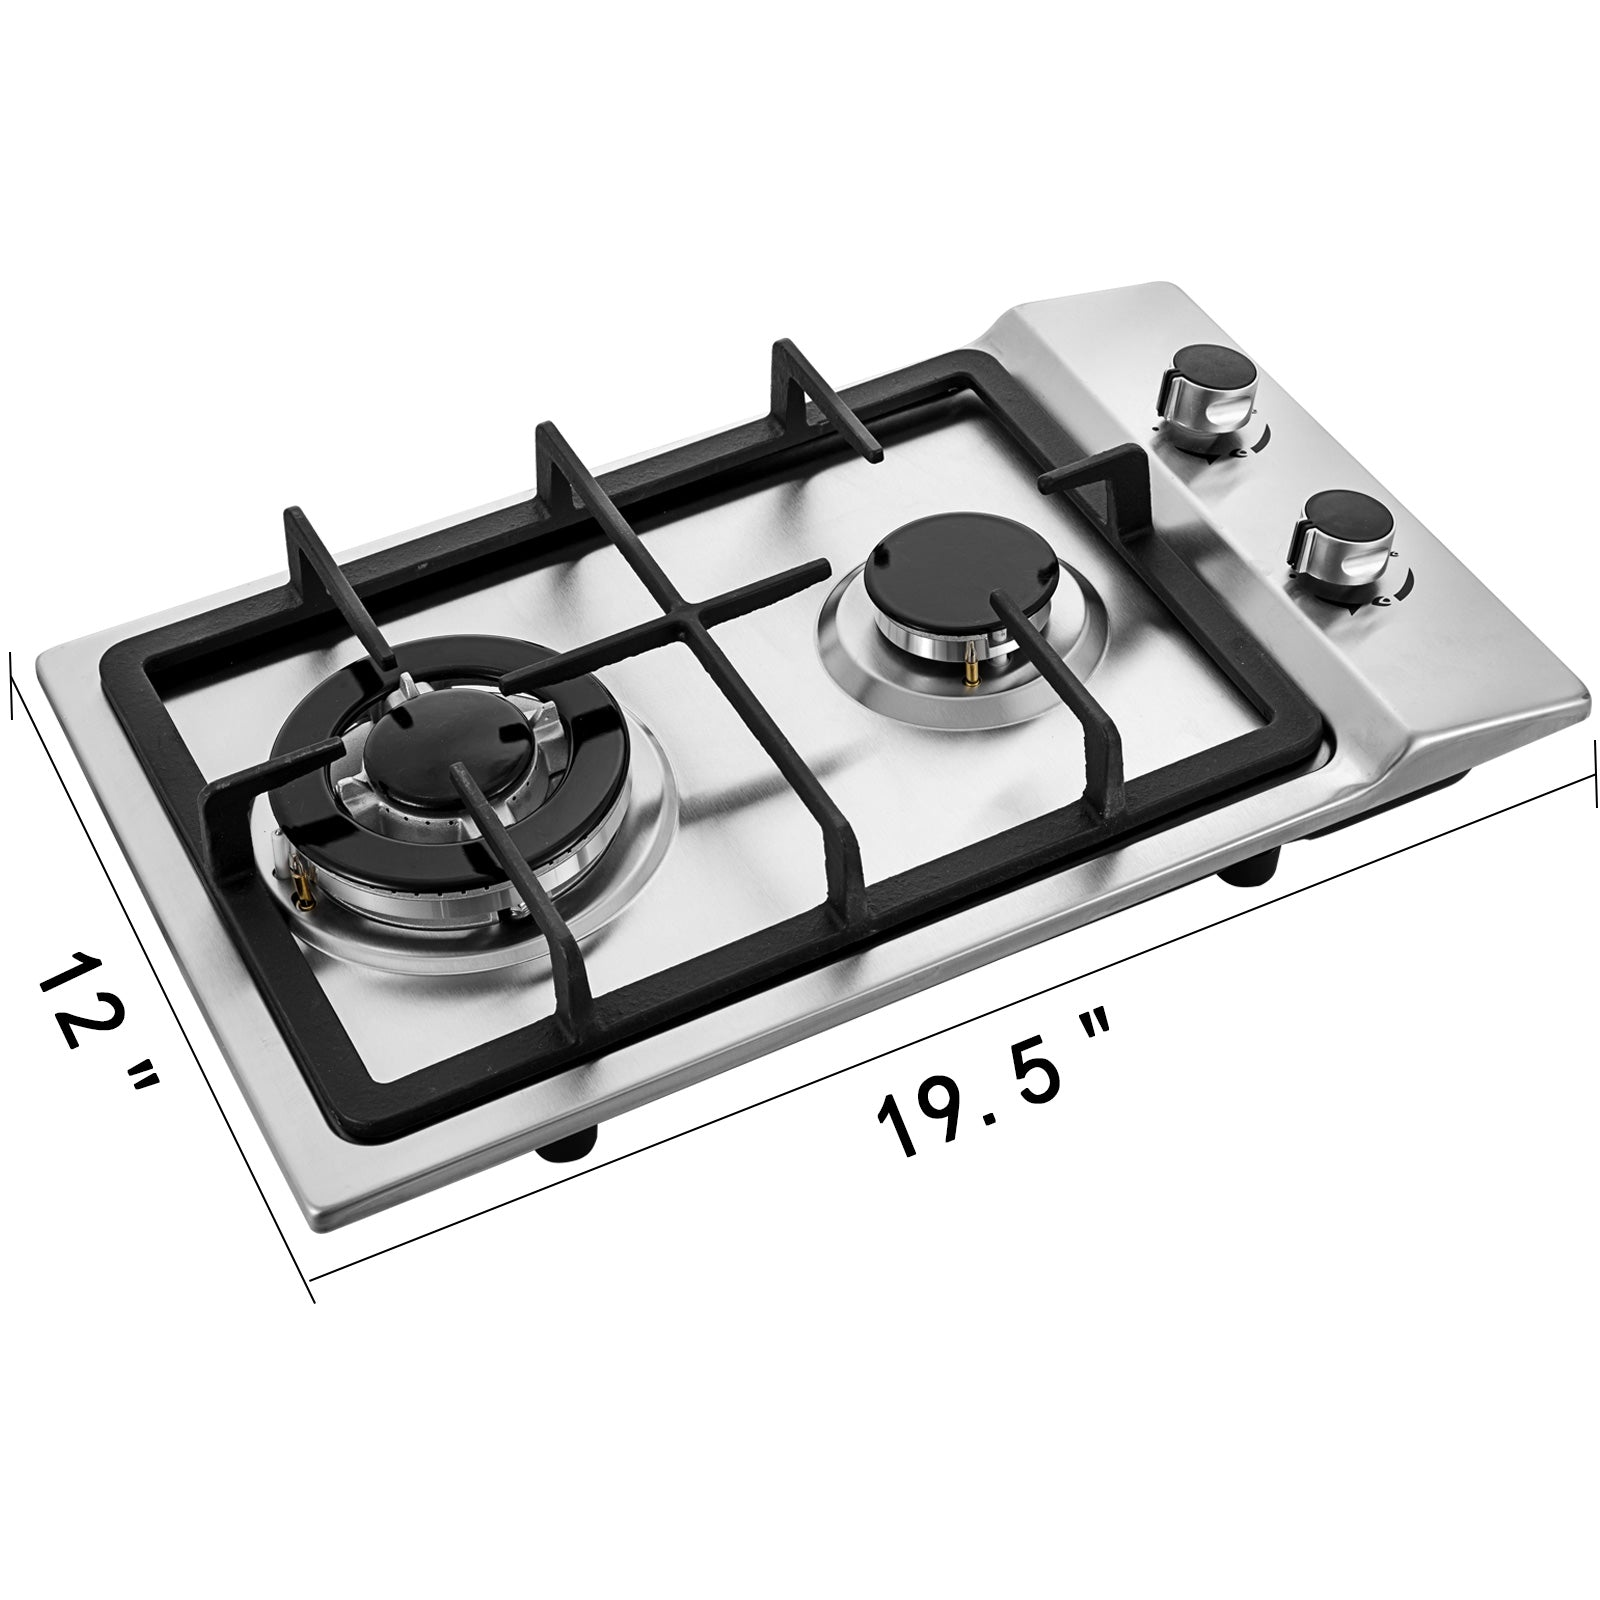 "12"" 2 Burners Gas Cooktop Stainless Steel Iron Grates Double Oven Durable Knob"